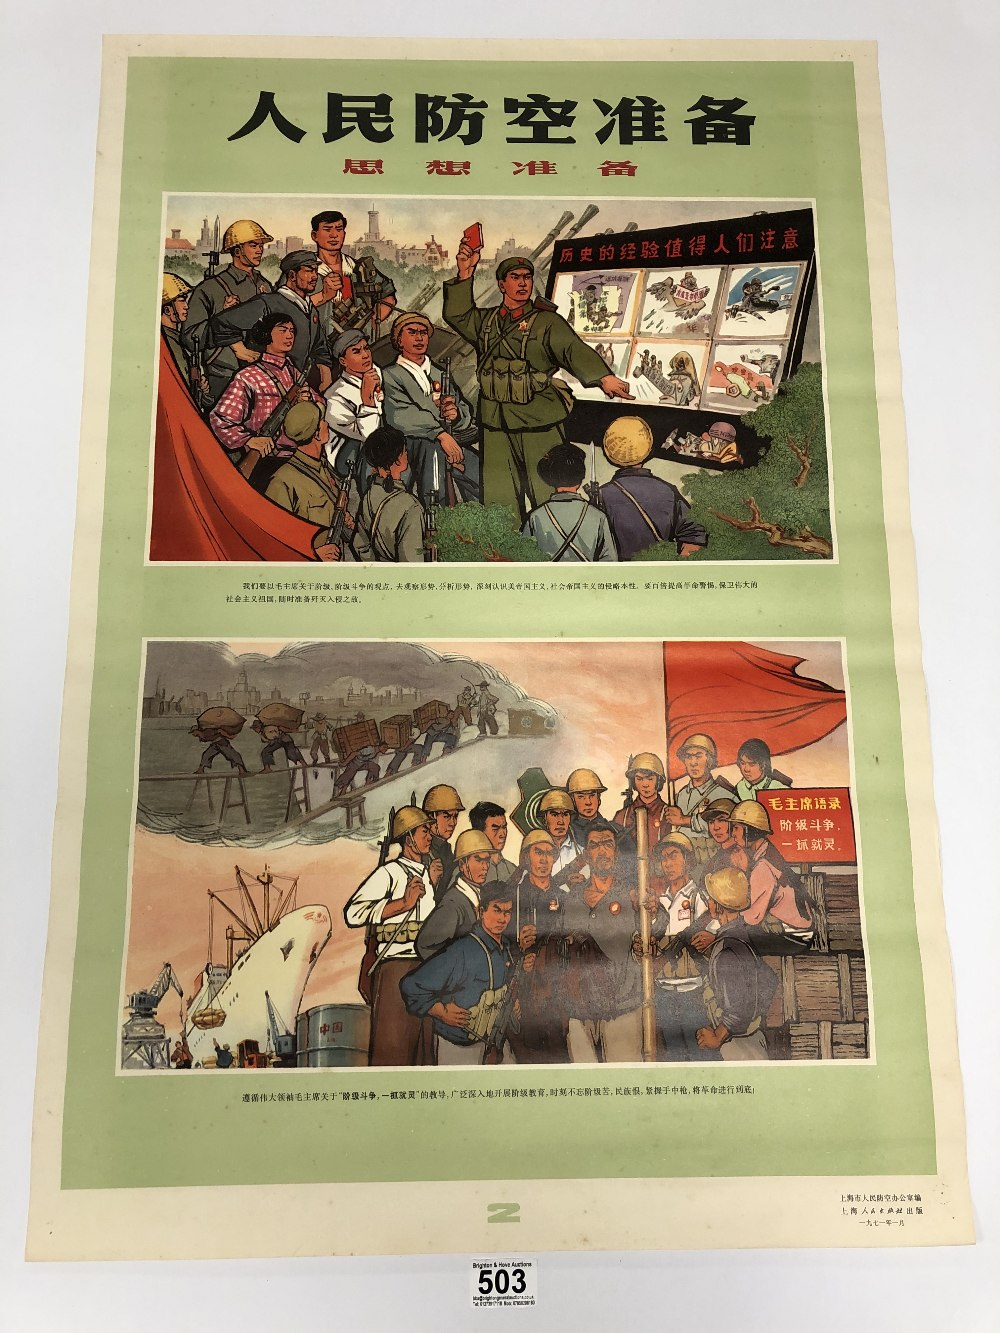 Lot 503 - AN ORIGINAL CHINESE PROPAGANDA POSTER DEPICTING CIVILIANS DURING MILITARIZATION IN THE CHINESE